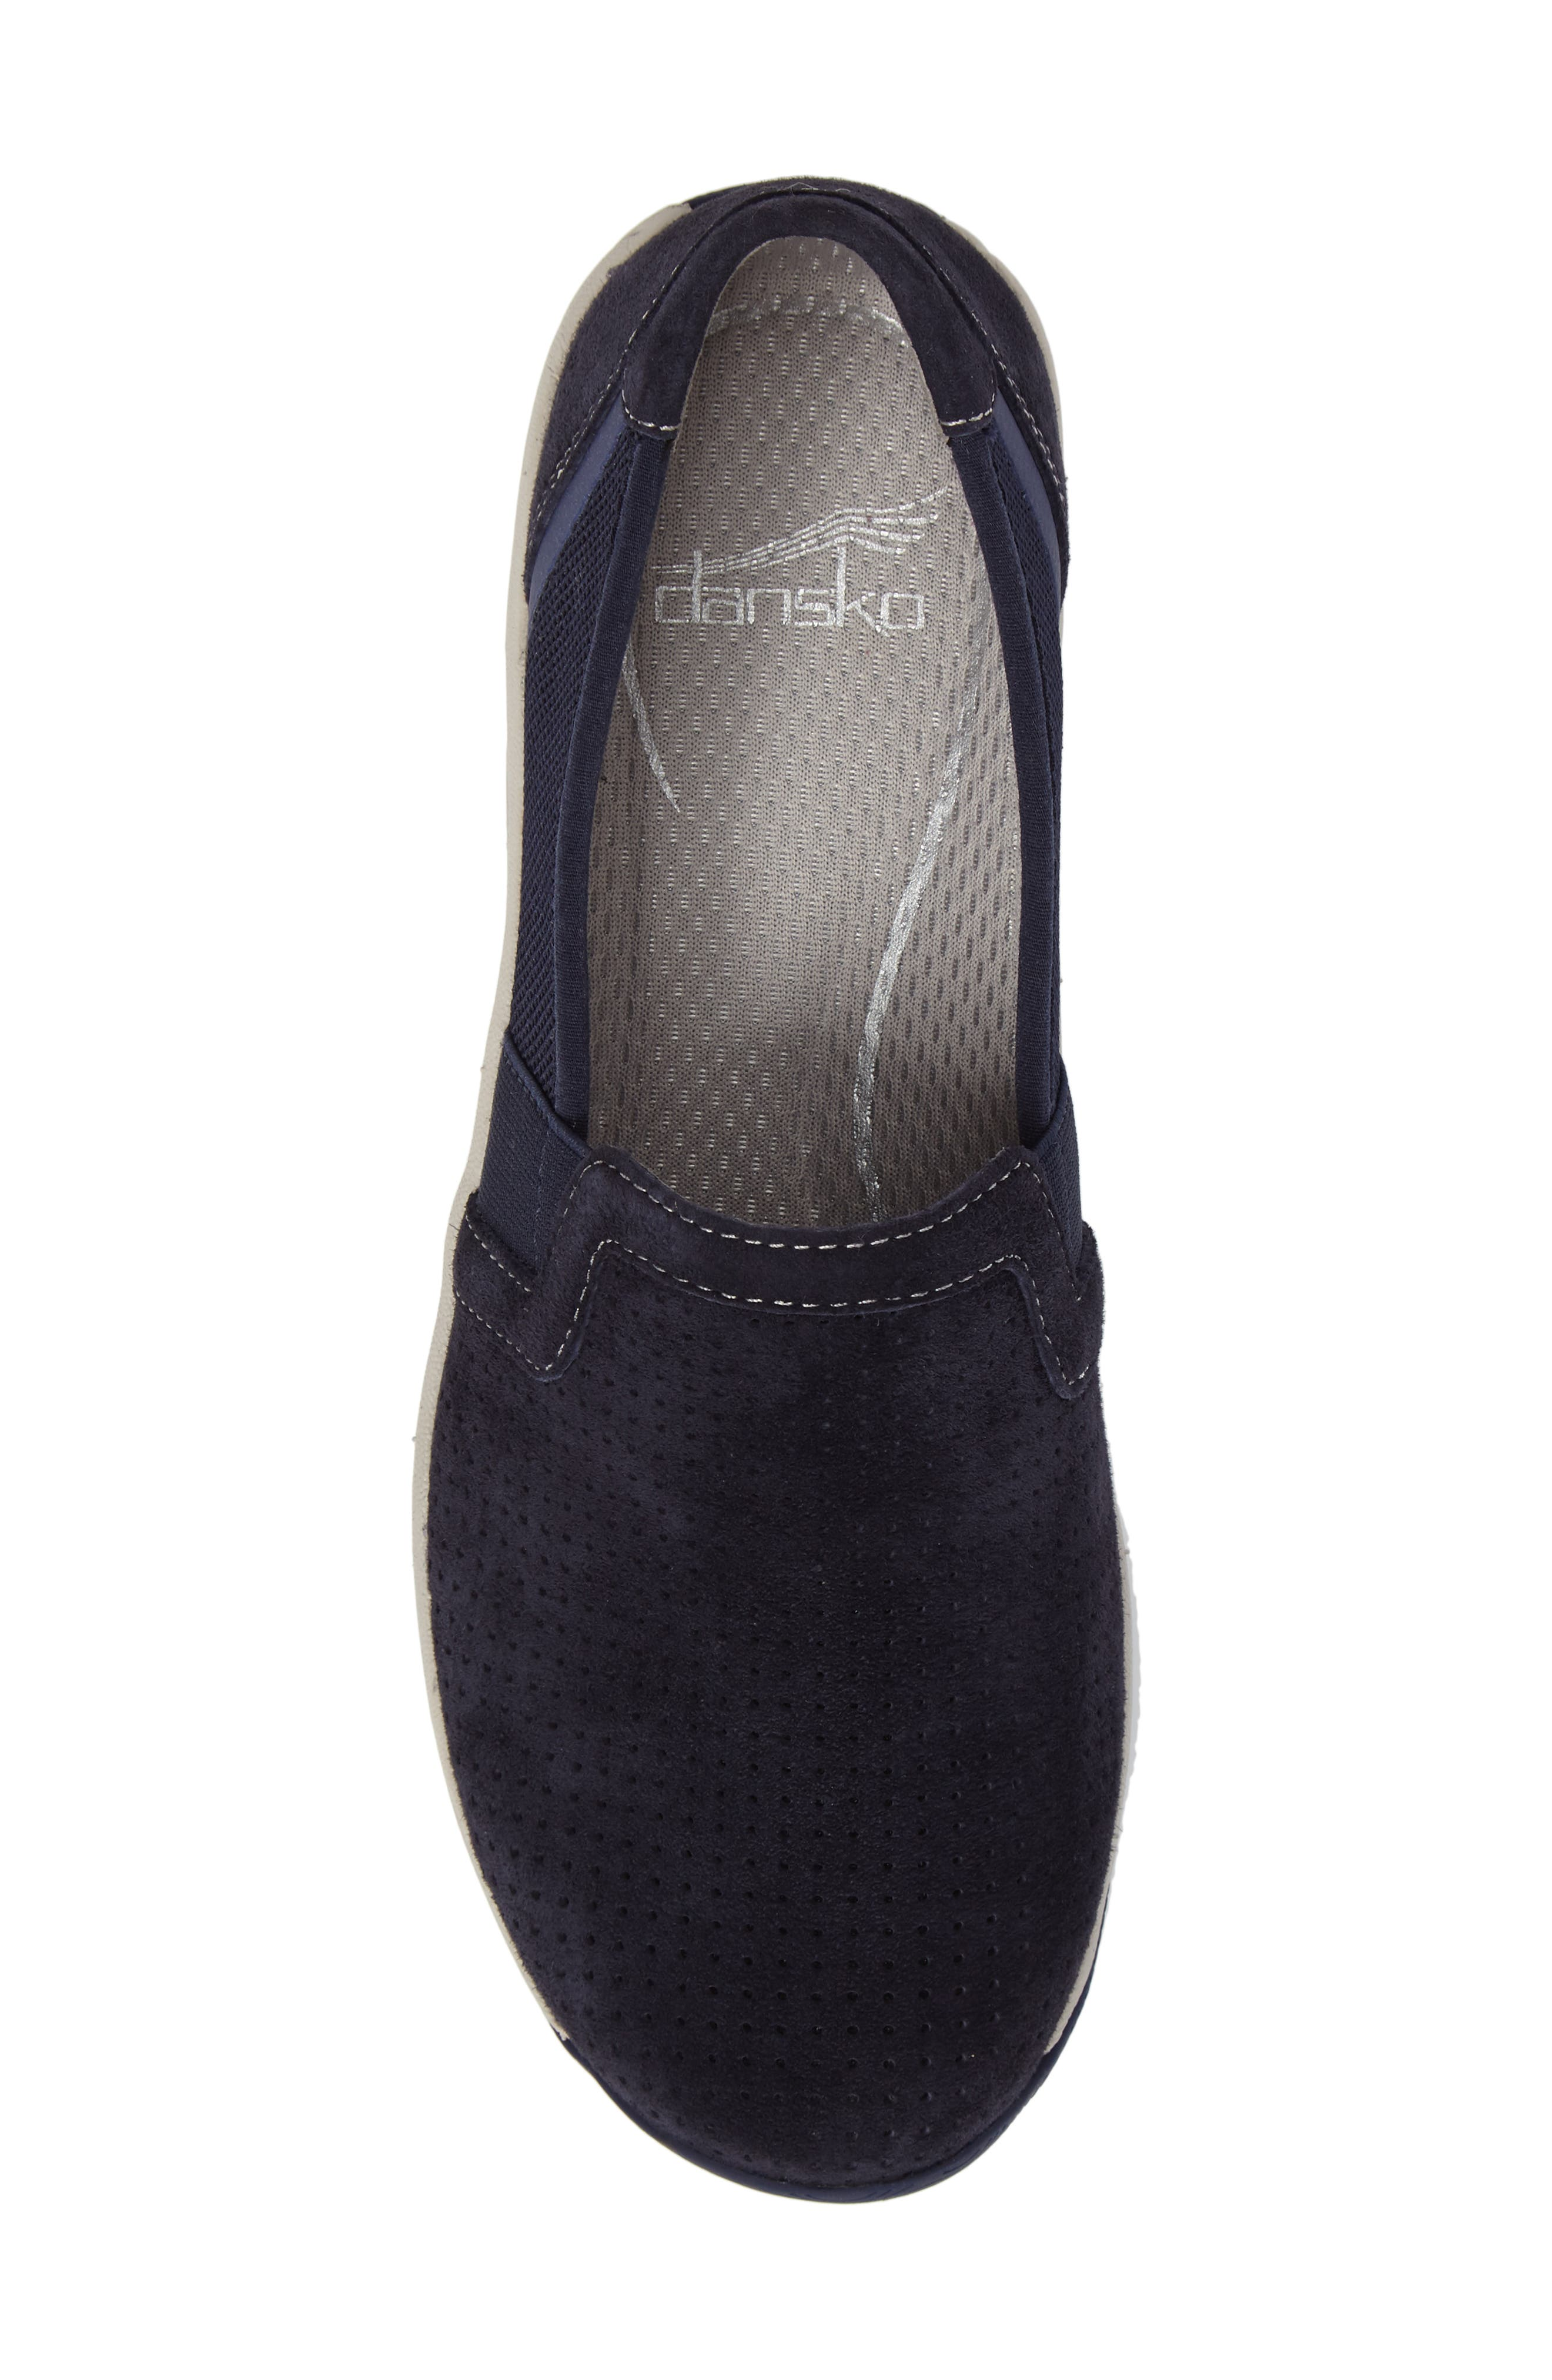 Halifax Collection Halle Slip-On Sneaker,                             Alternate thumbnail 5, color,                             Navy Suede